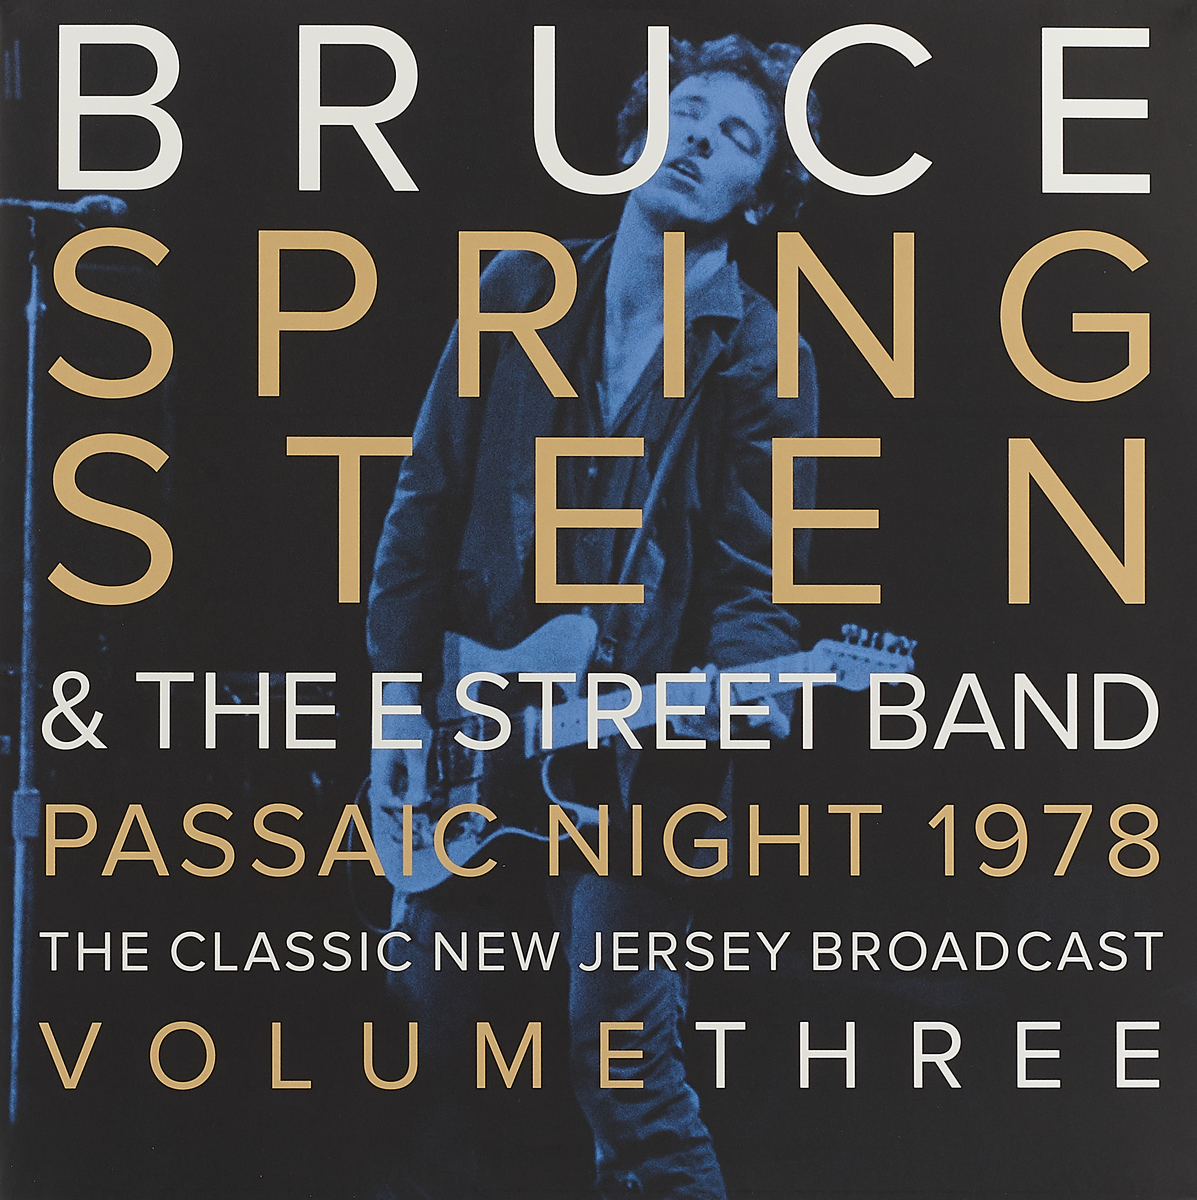 Брюс Спрингстин Bruce Springsteen. Passaic Night 1978 The Classic New Jersey Broadcast Volume Three (2 LP) брюс спрингстин bruce springsteen the wild the innocent and the e street shuffle lp